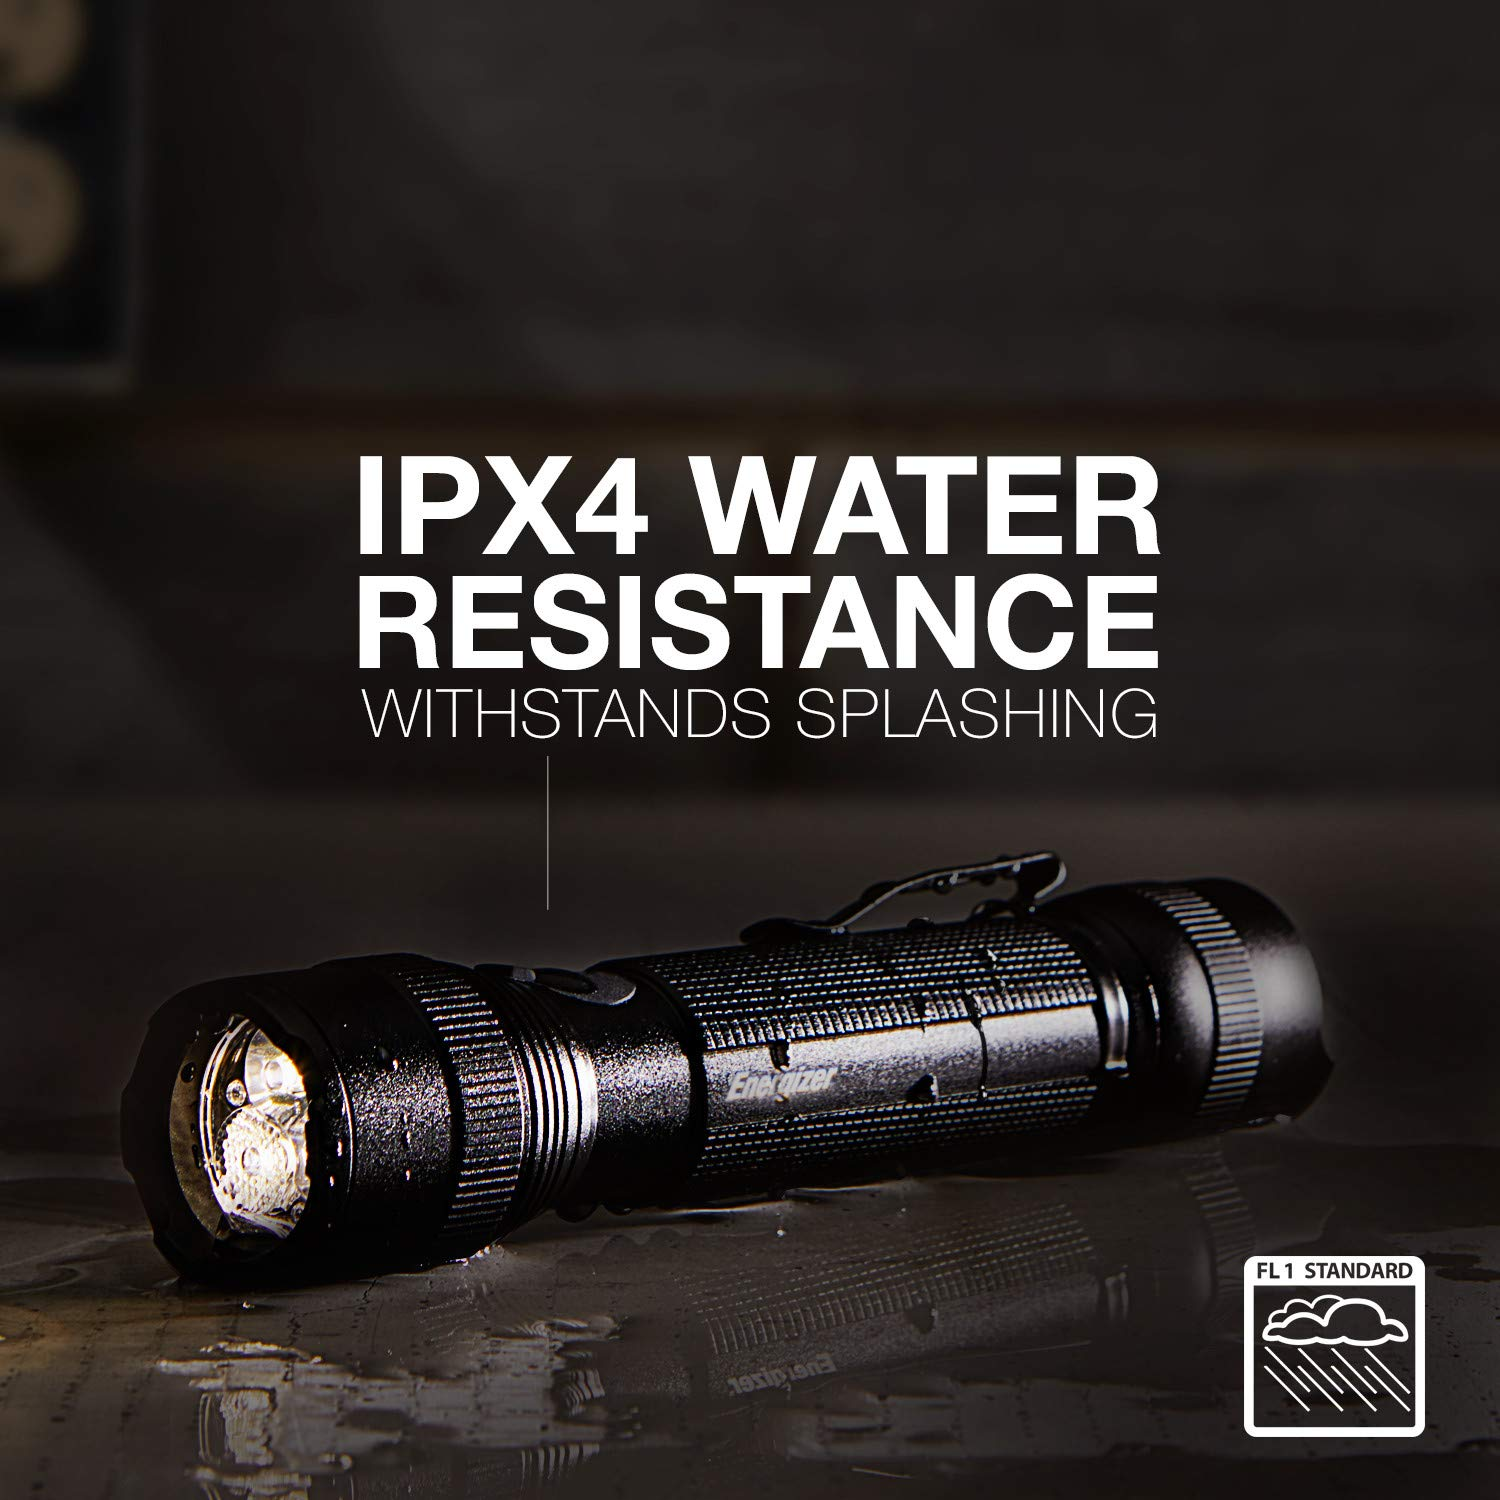 Energizer Tac-r 700 Rechargeable Tactical Flashlight, 700 Lumens 3 Modes by Energizer (Image #4)